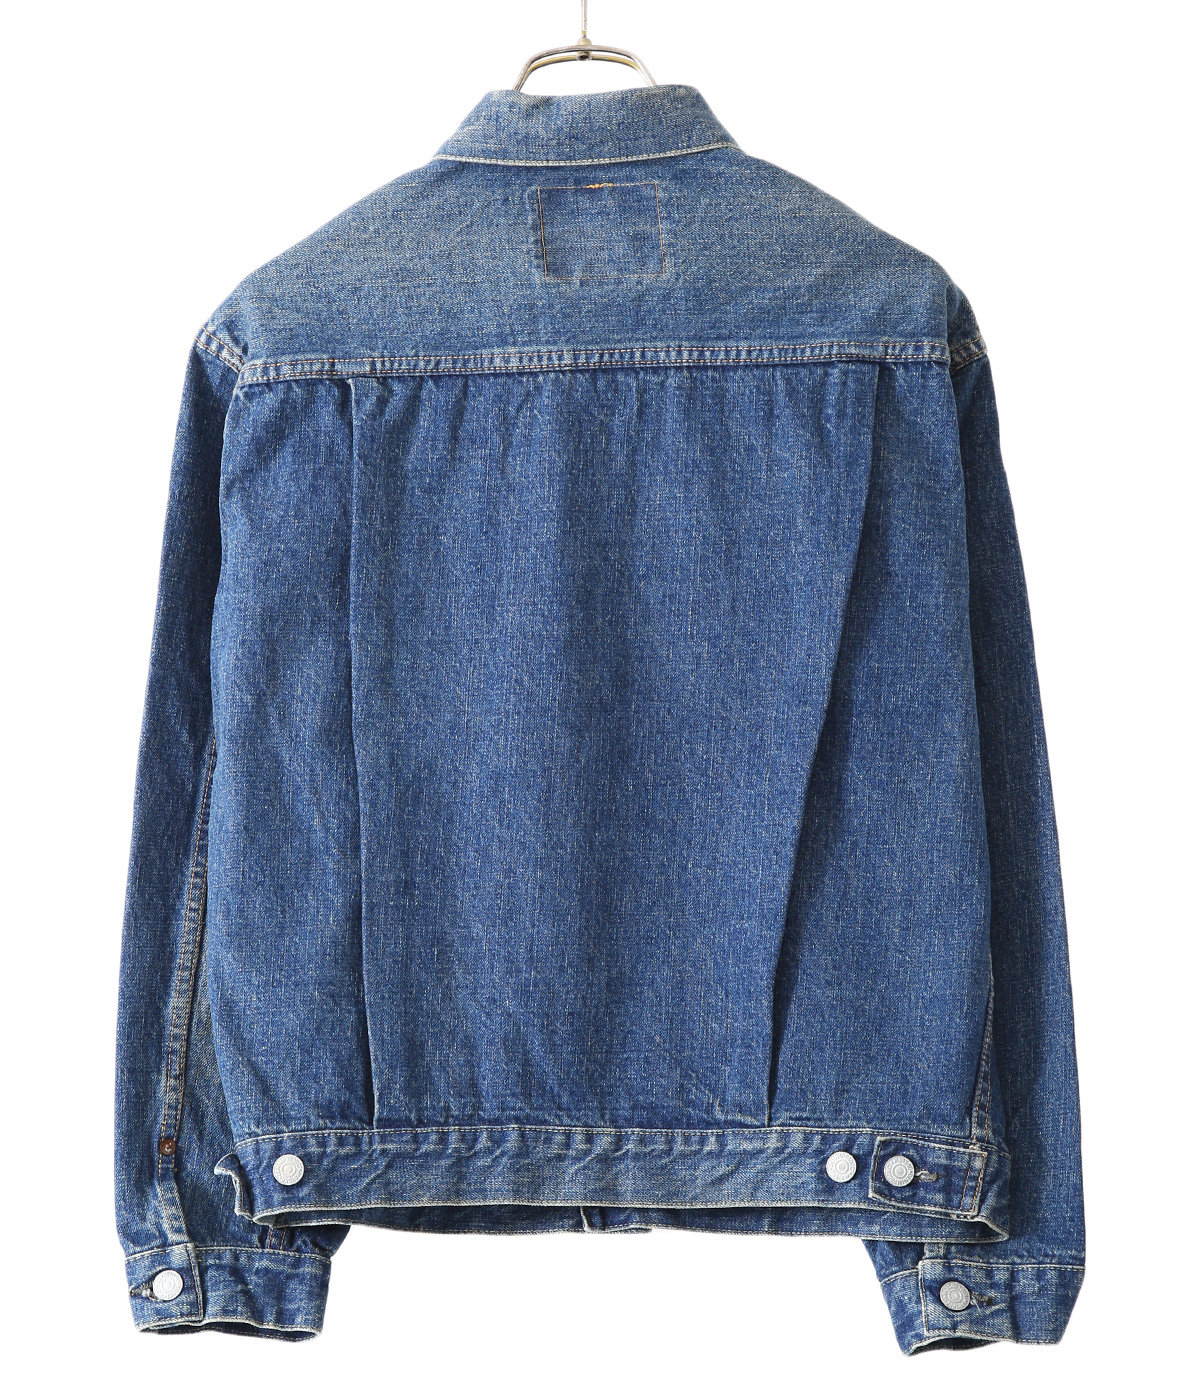 50'S DENIM JACKET 2 YEAR WASH(UNISEX)